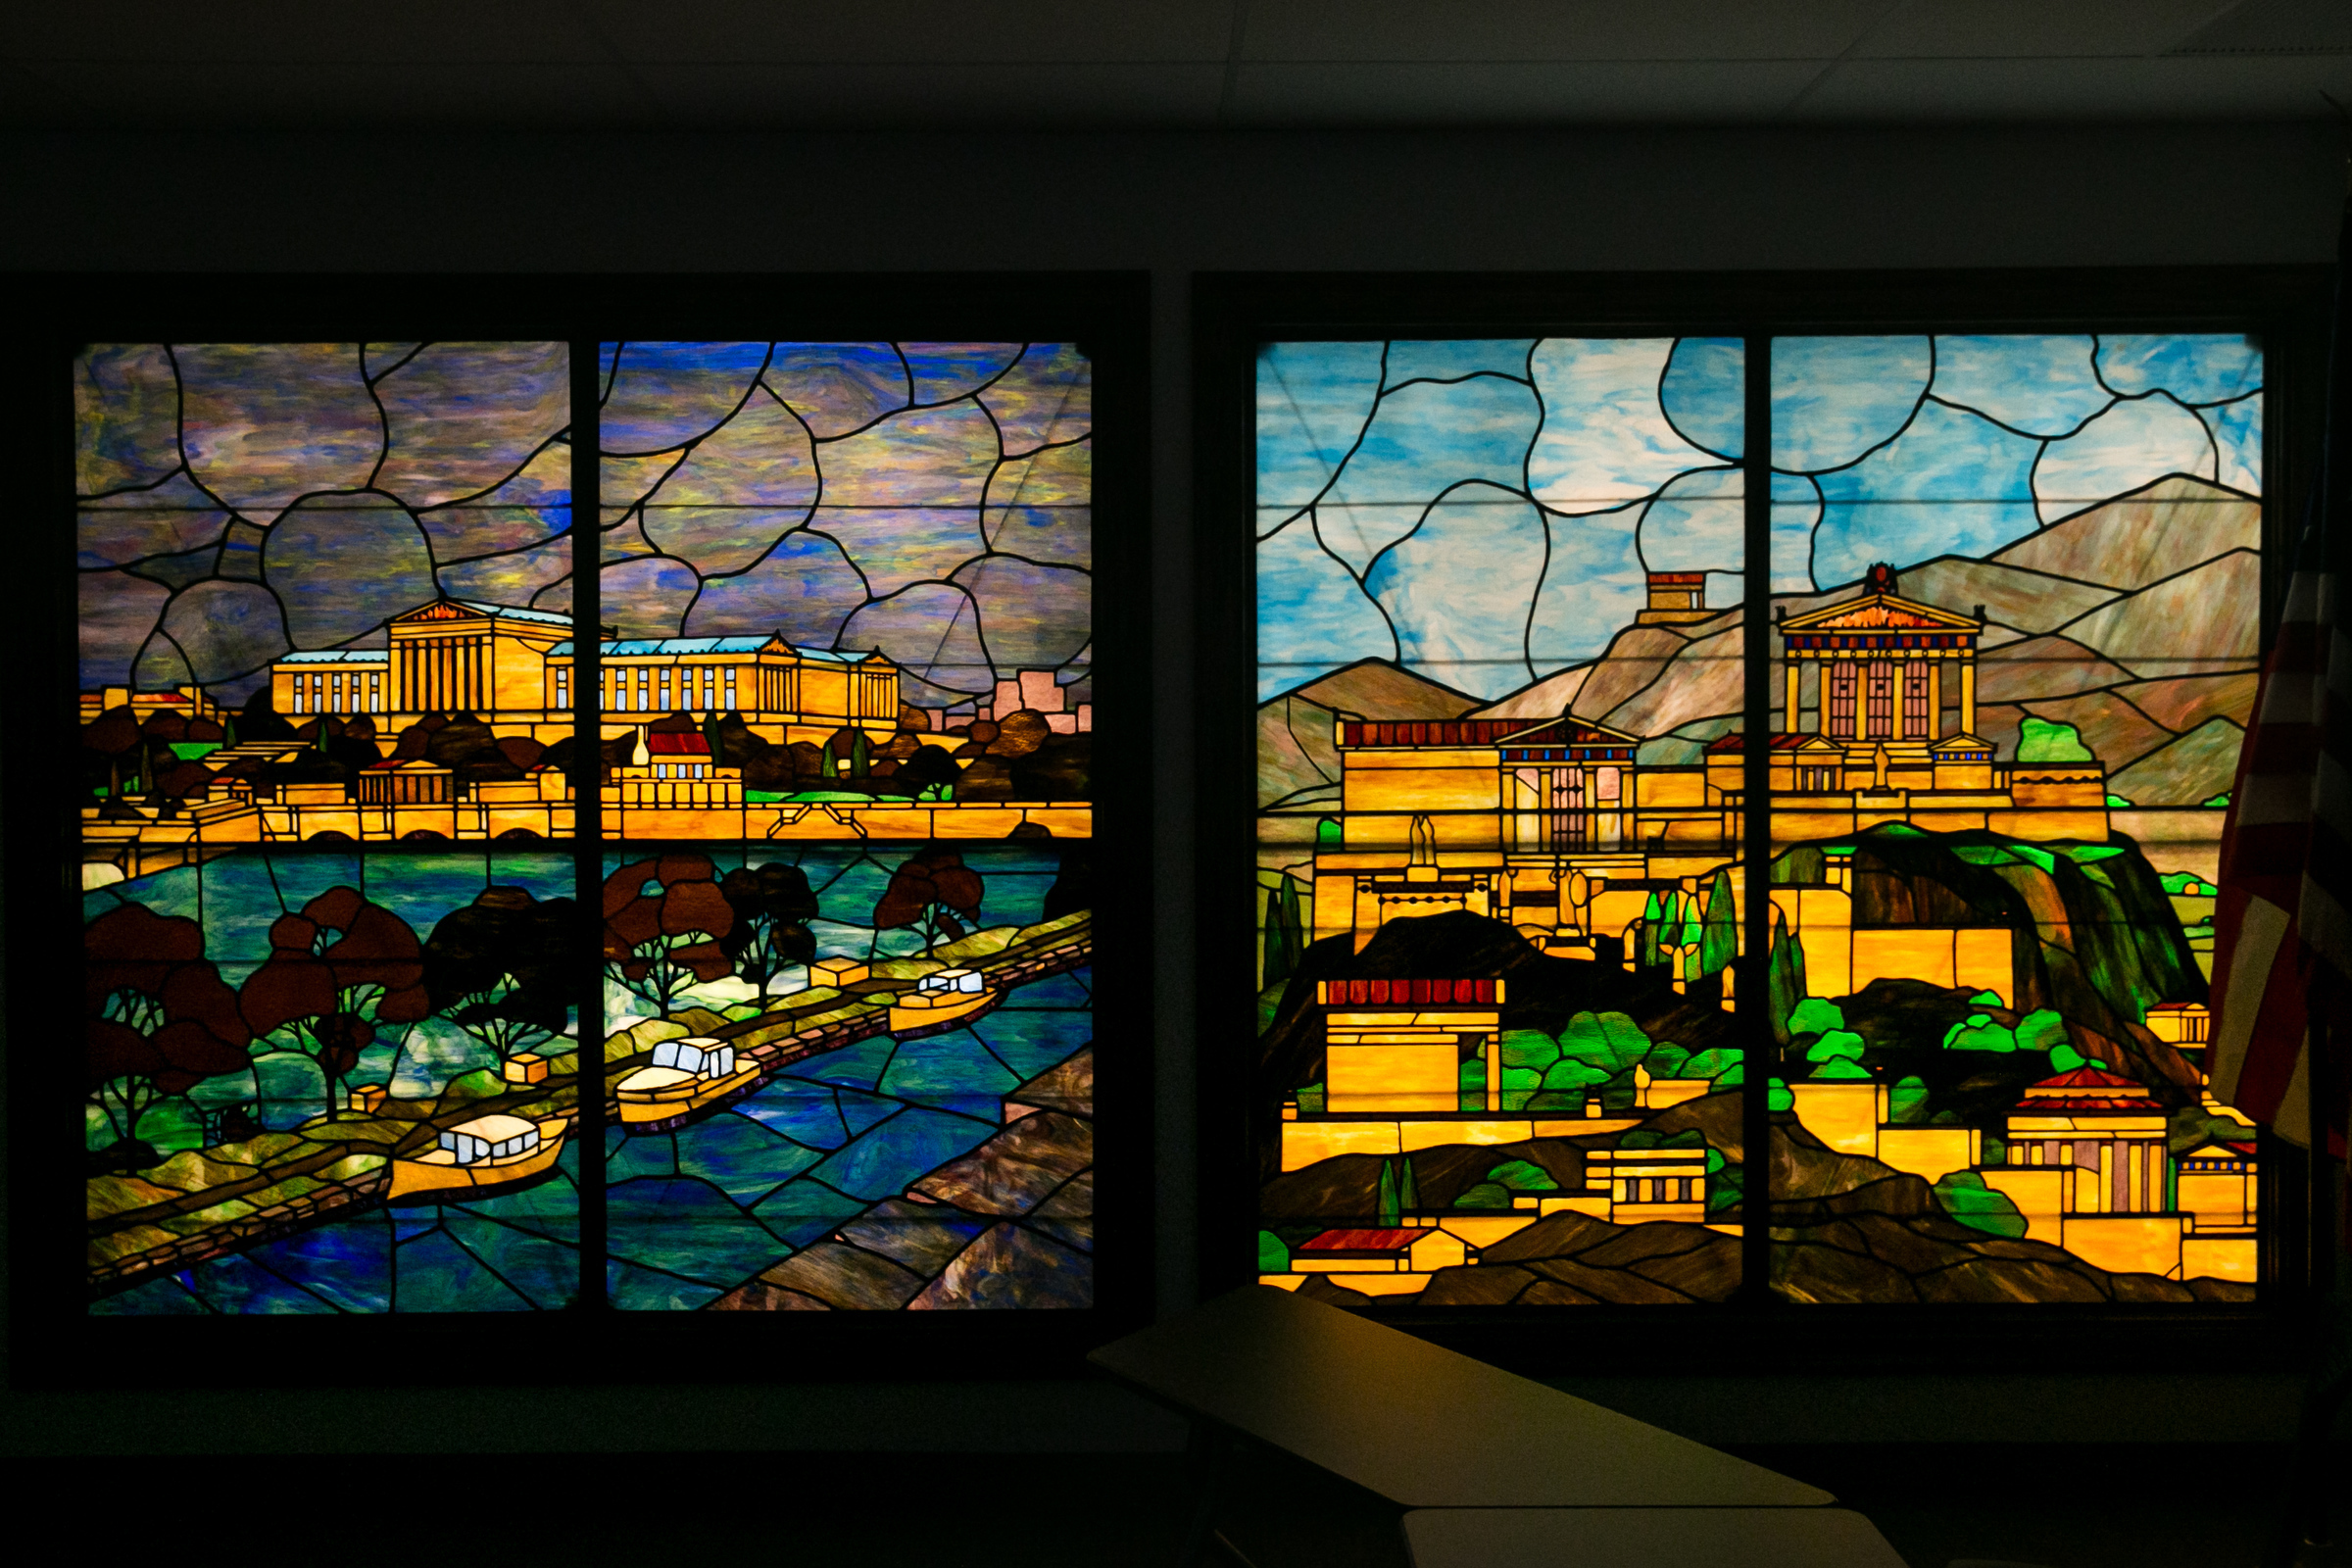 The restored stained glass windows, in the newly renovated school board space at 440 N. Broad St.